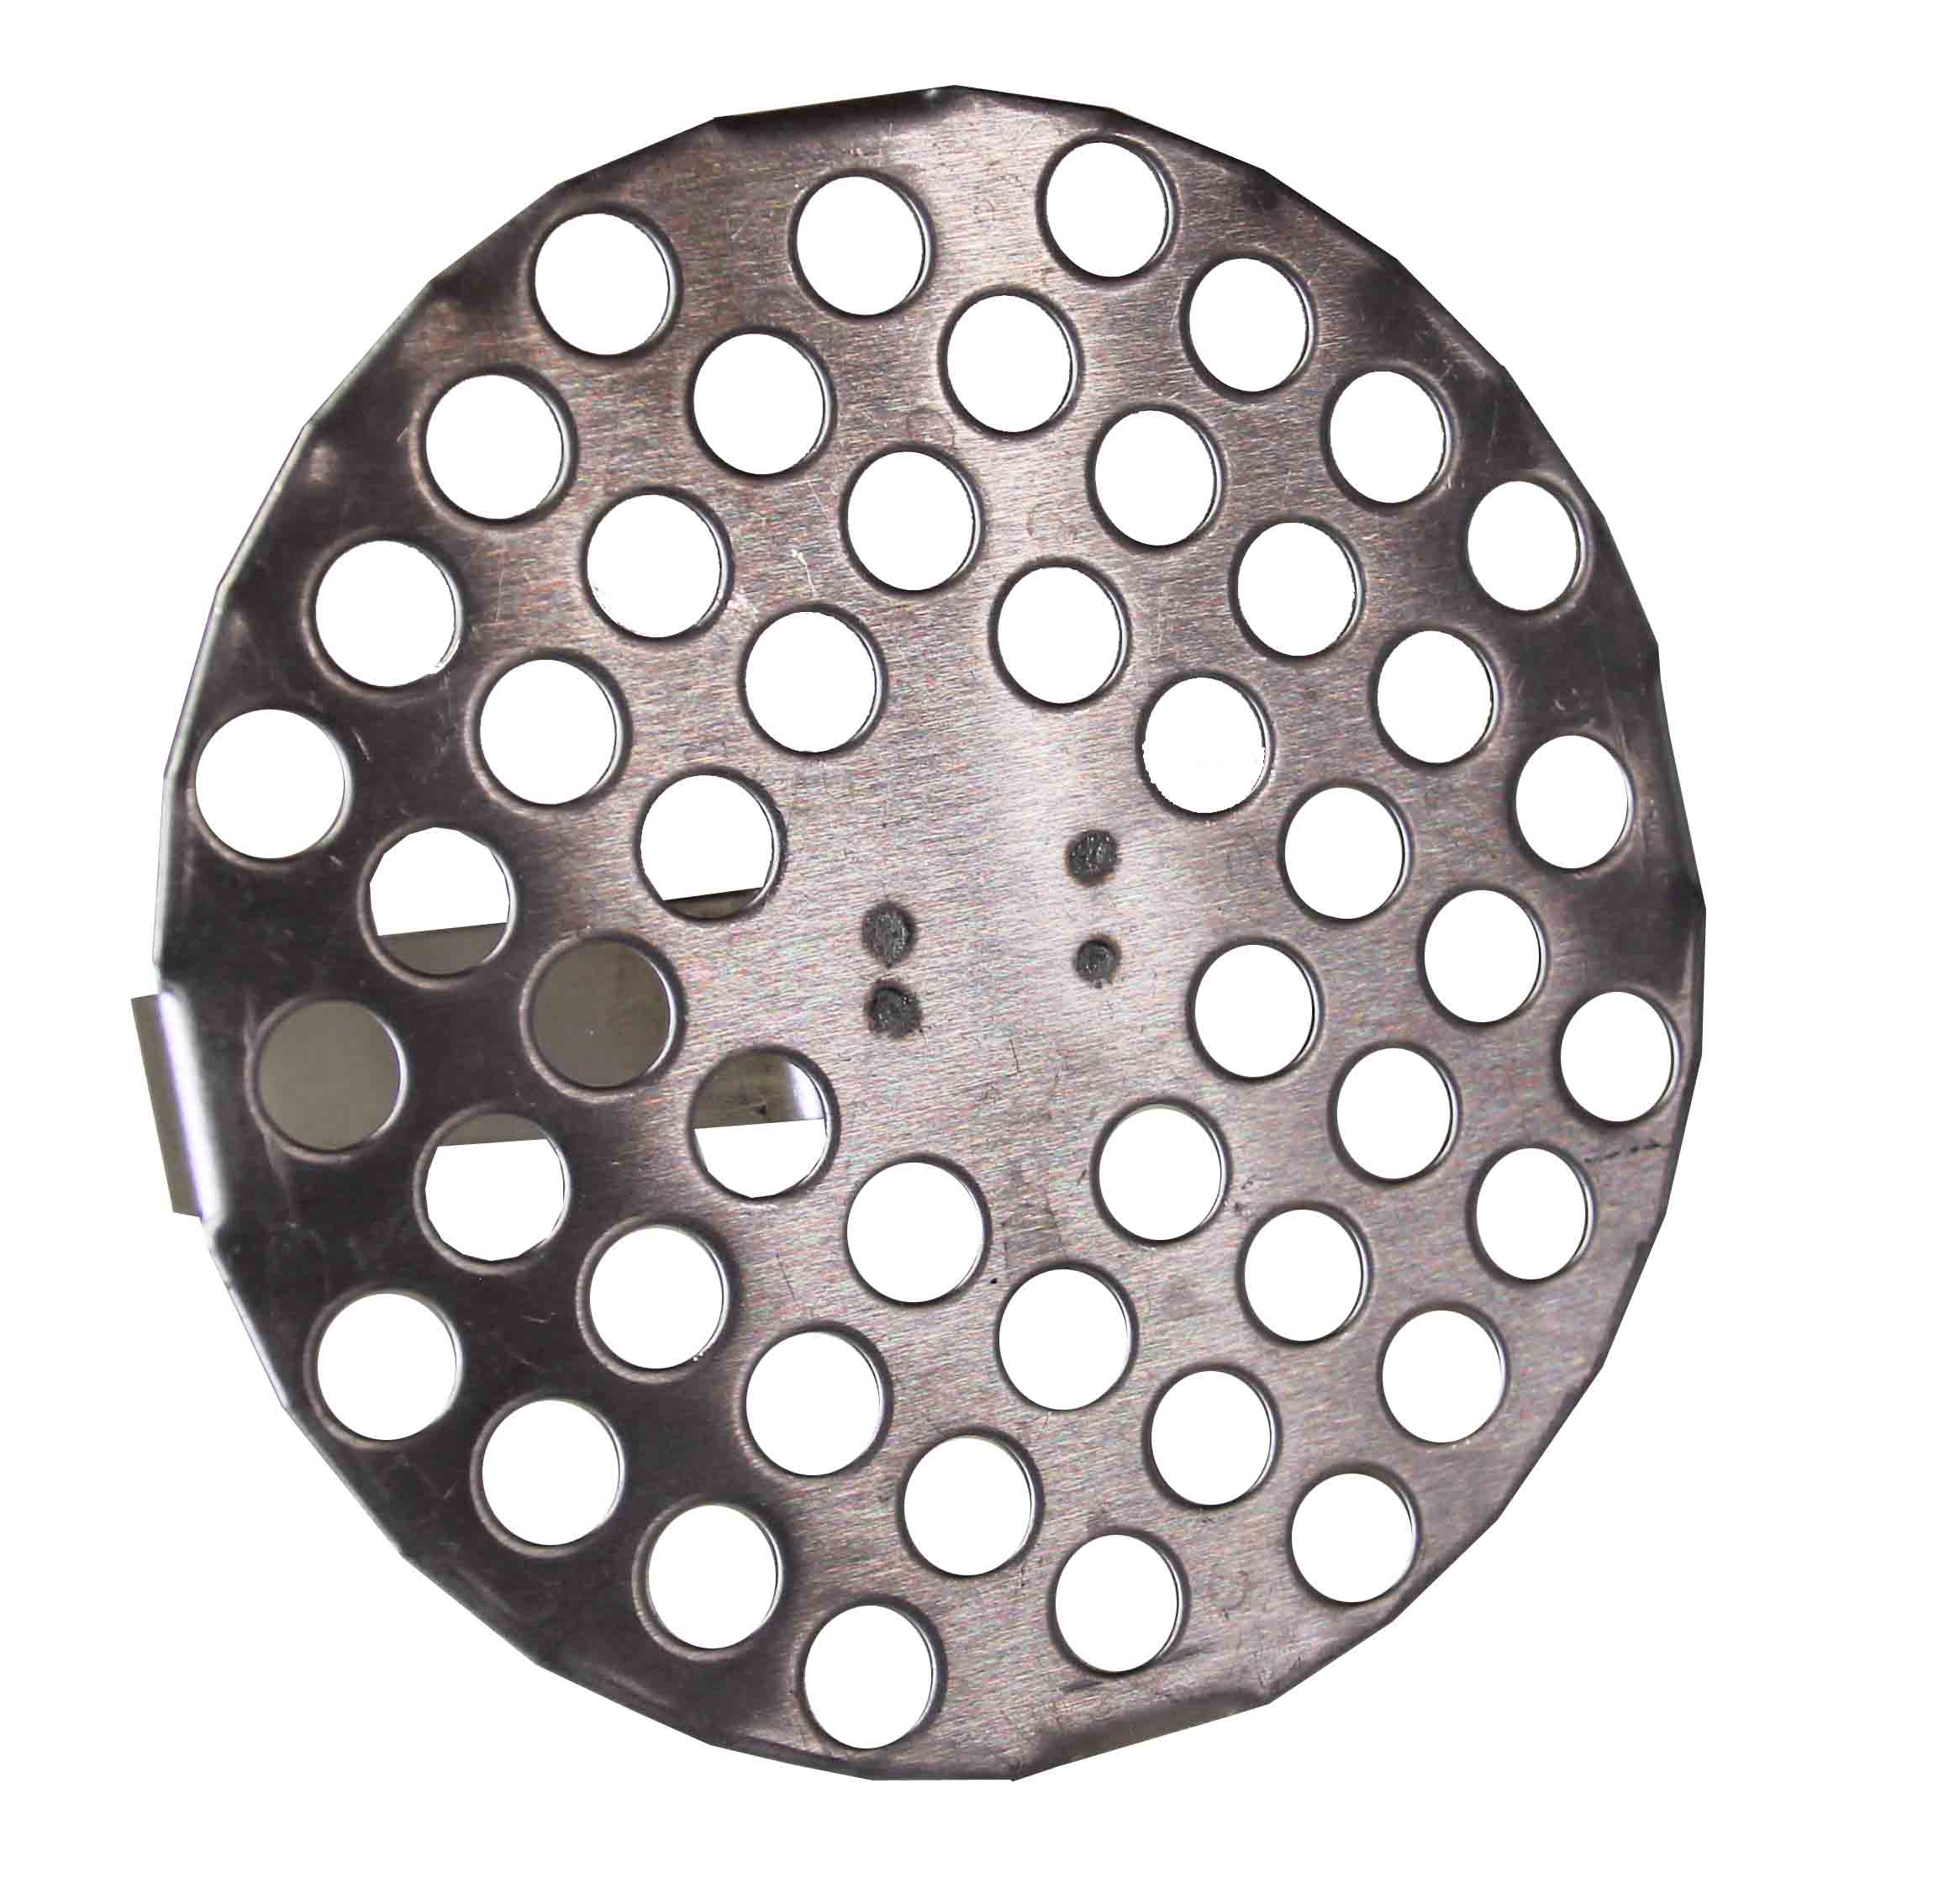 Drain Cover, Hi-flow 120mm stainless steel